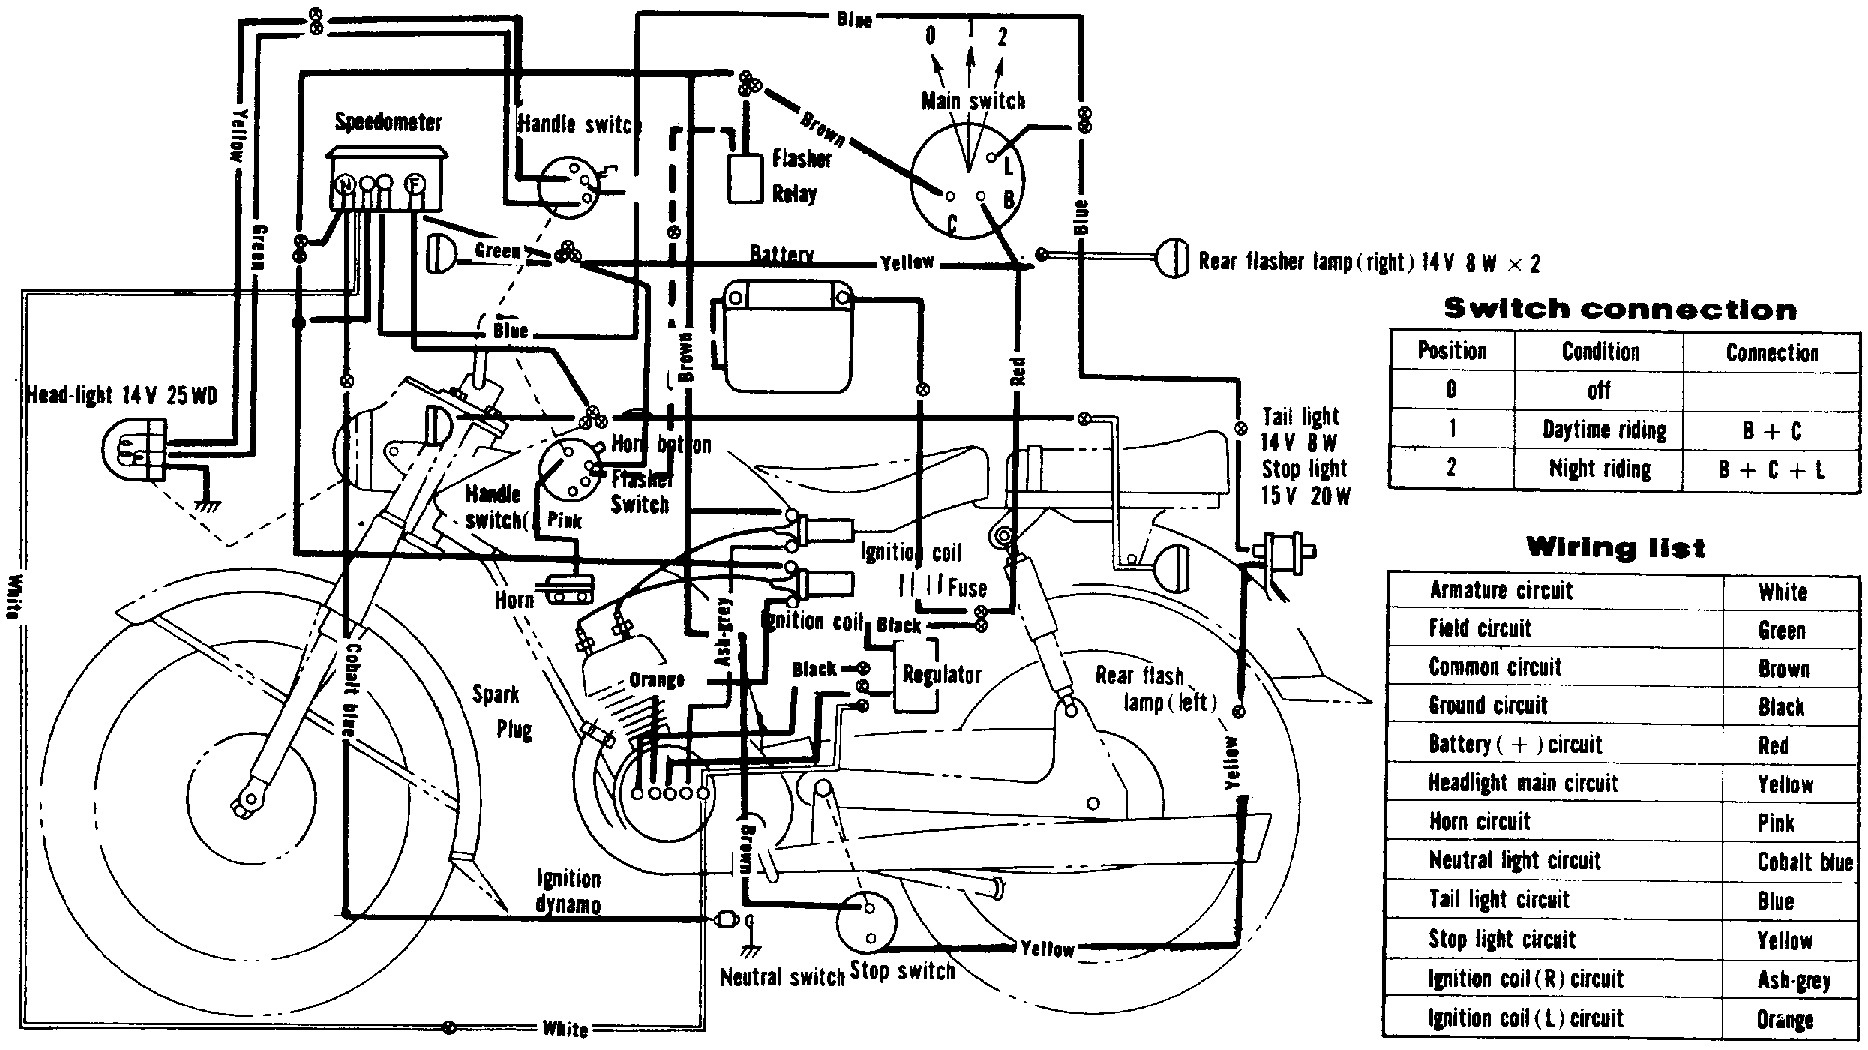 hight resolution of twin engine yamaha wiring electricity site international truck wiring yamaha l2 wiring diagram wiring diagrams best